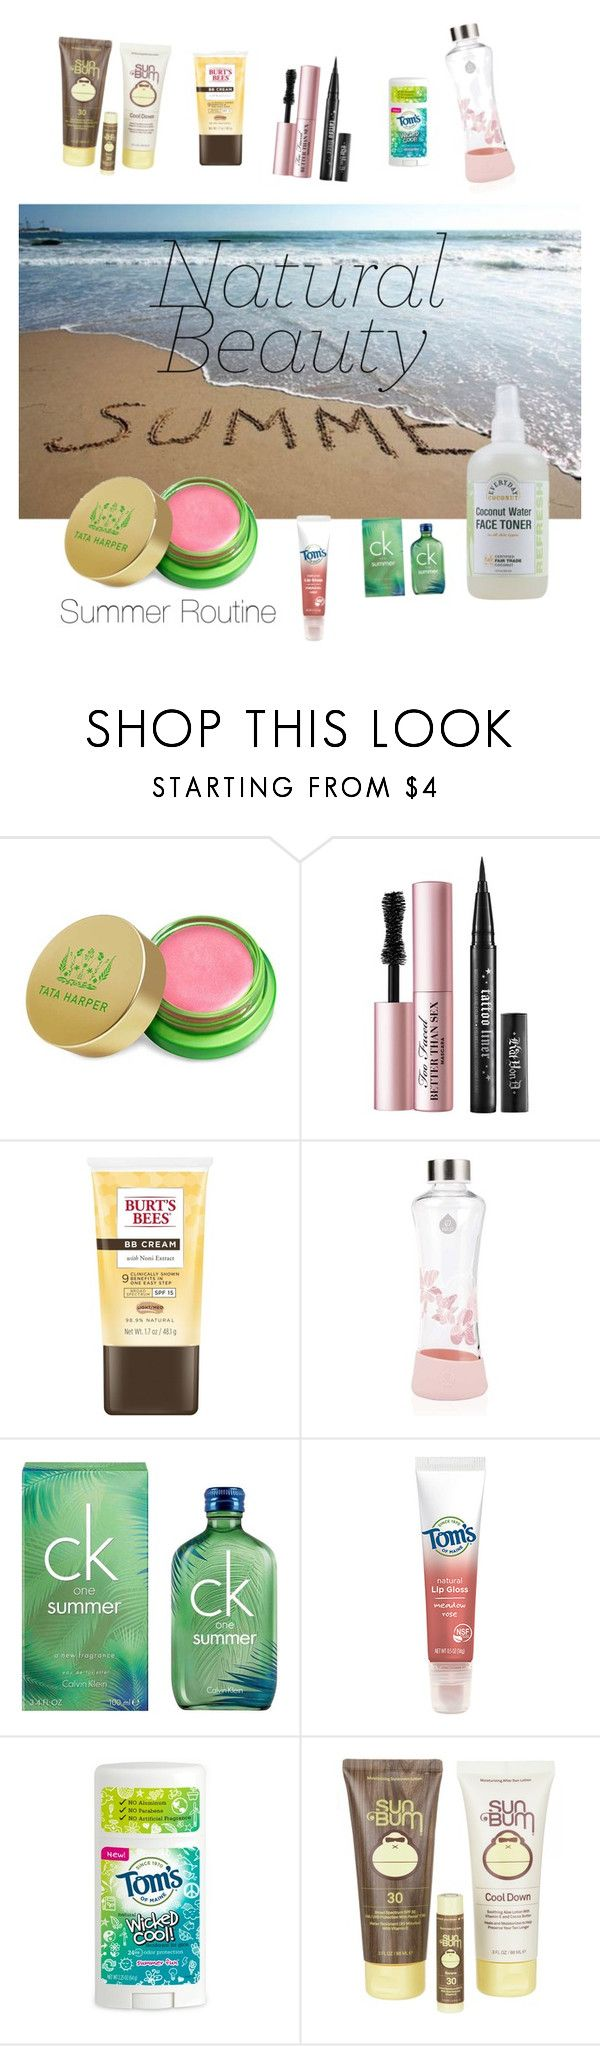 """""""Untitled #398"""" by sftorchwood ❤ liked on Polyvore featuring beauty, Tata Harper, Too Faced Cosmetics, Burt's Bees, Equa, Calvin Klein, Tom's of Maine and Sun Bum"""